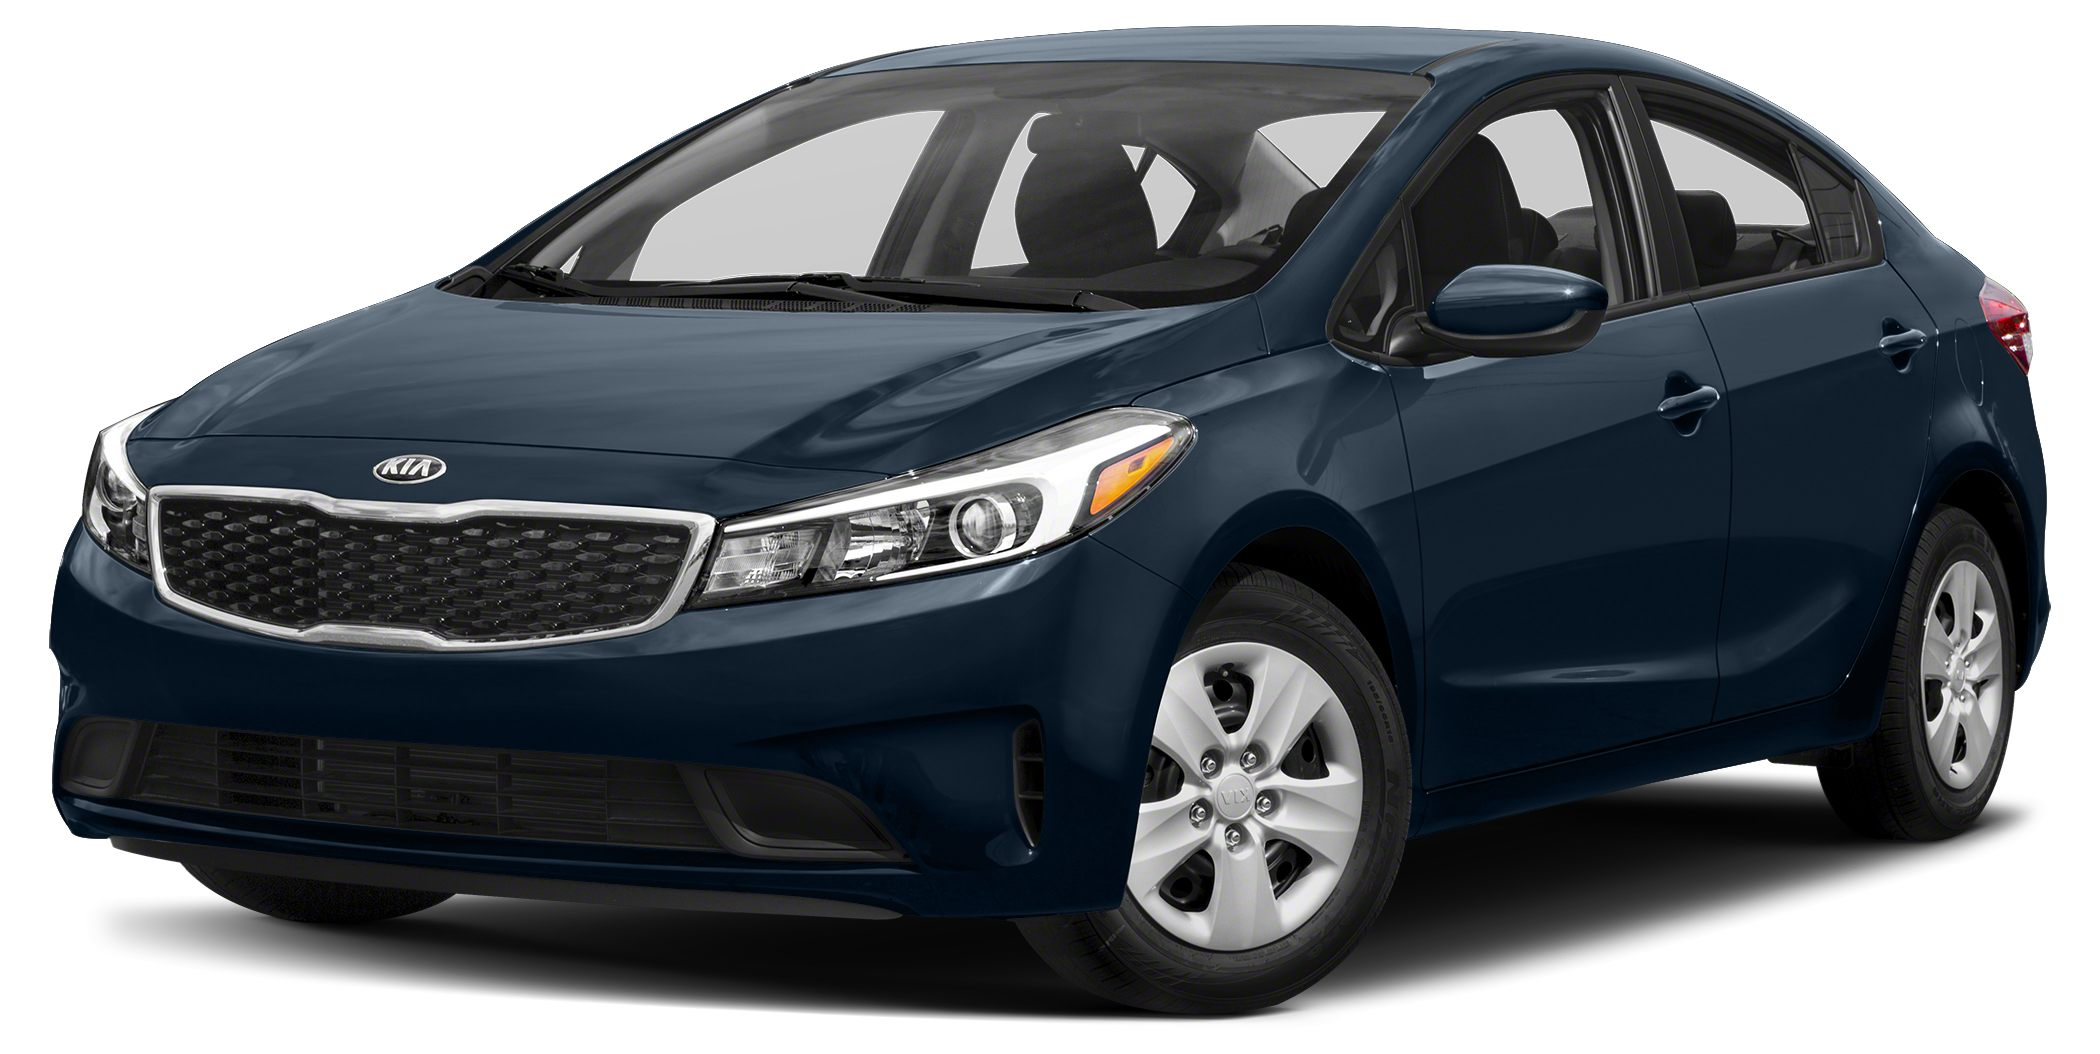 2018 Kia Forte LX Miles 5Color Deep Sea Blue Stock SB17965 VIN 3KPFK4A73JE232432